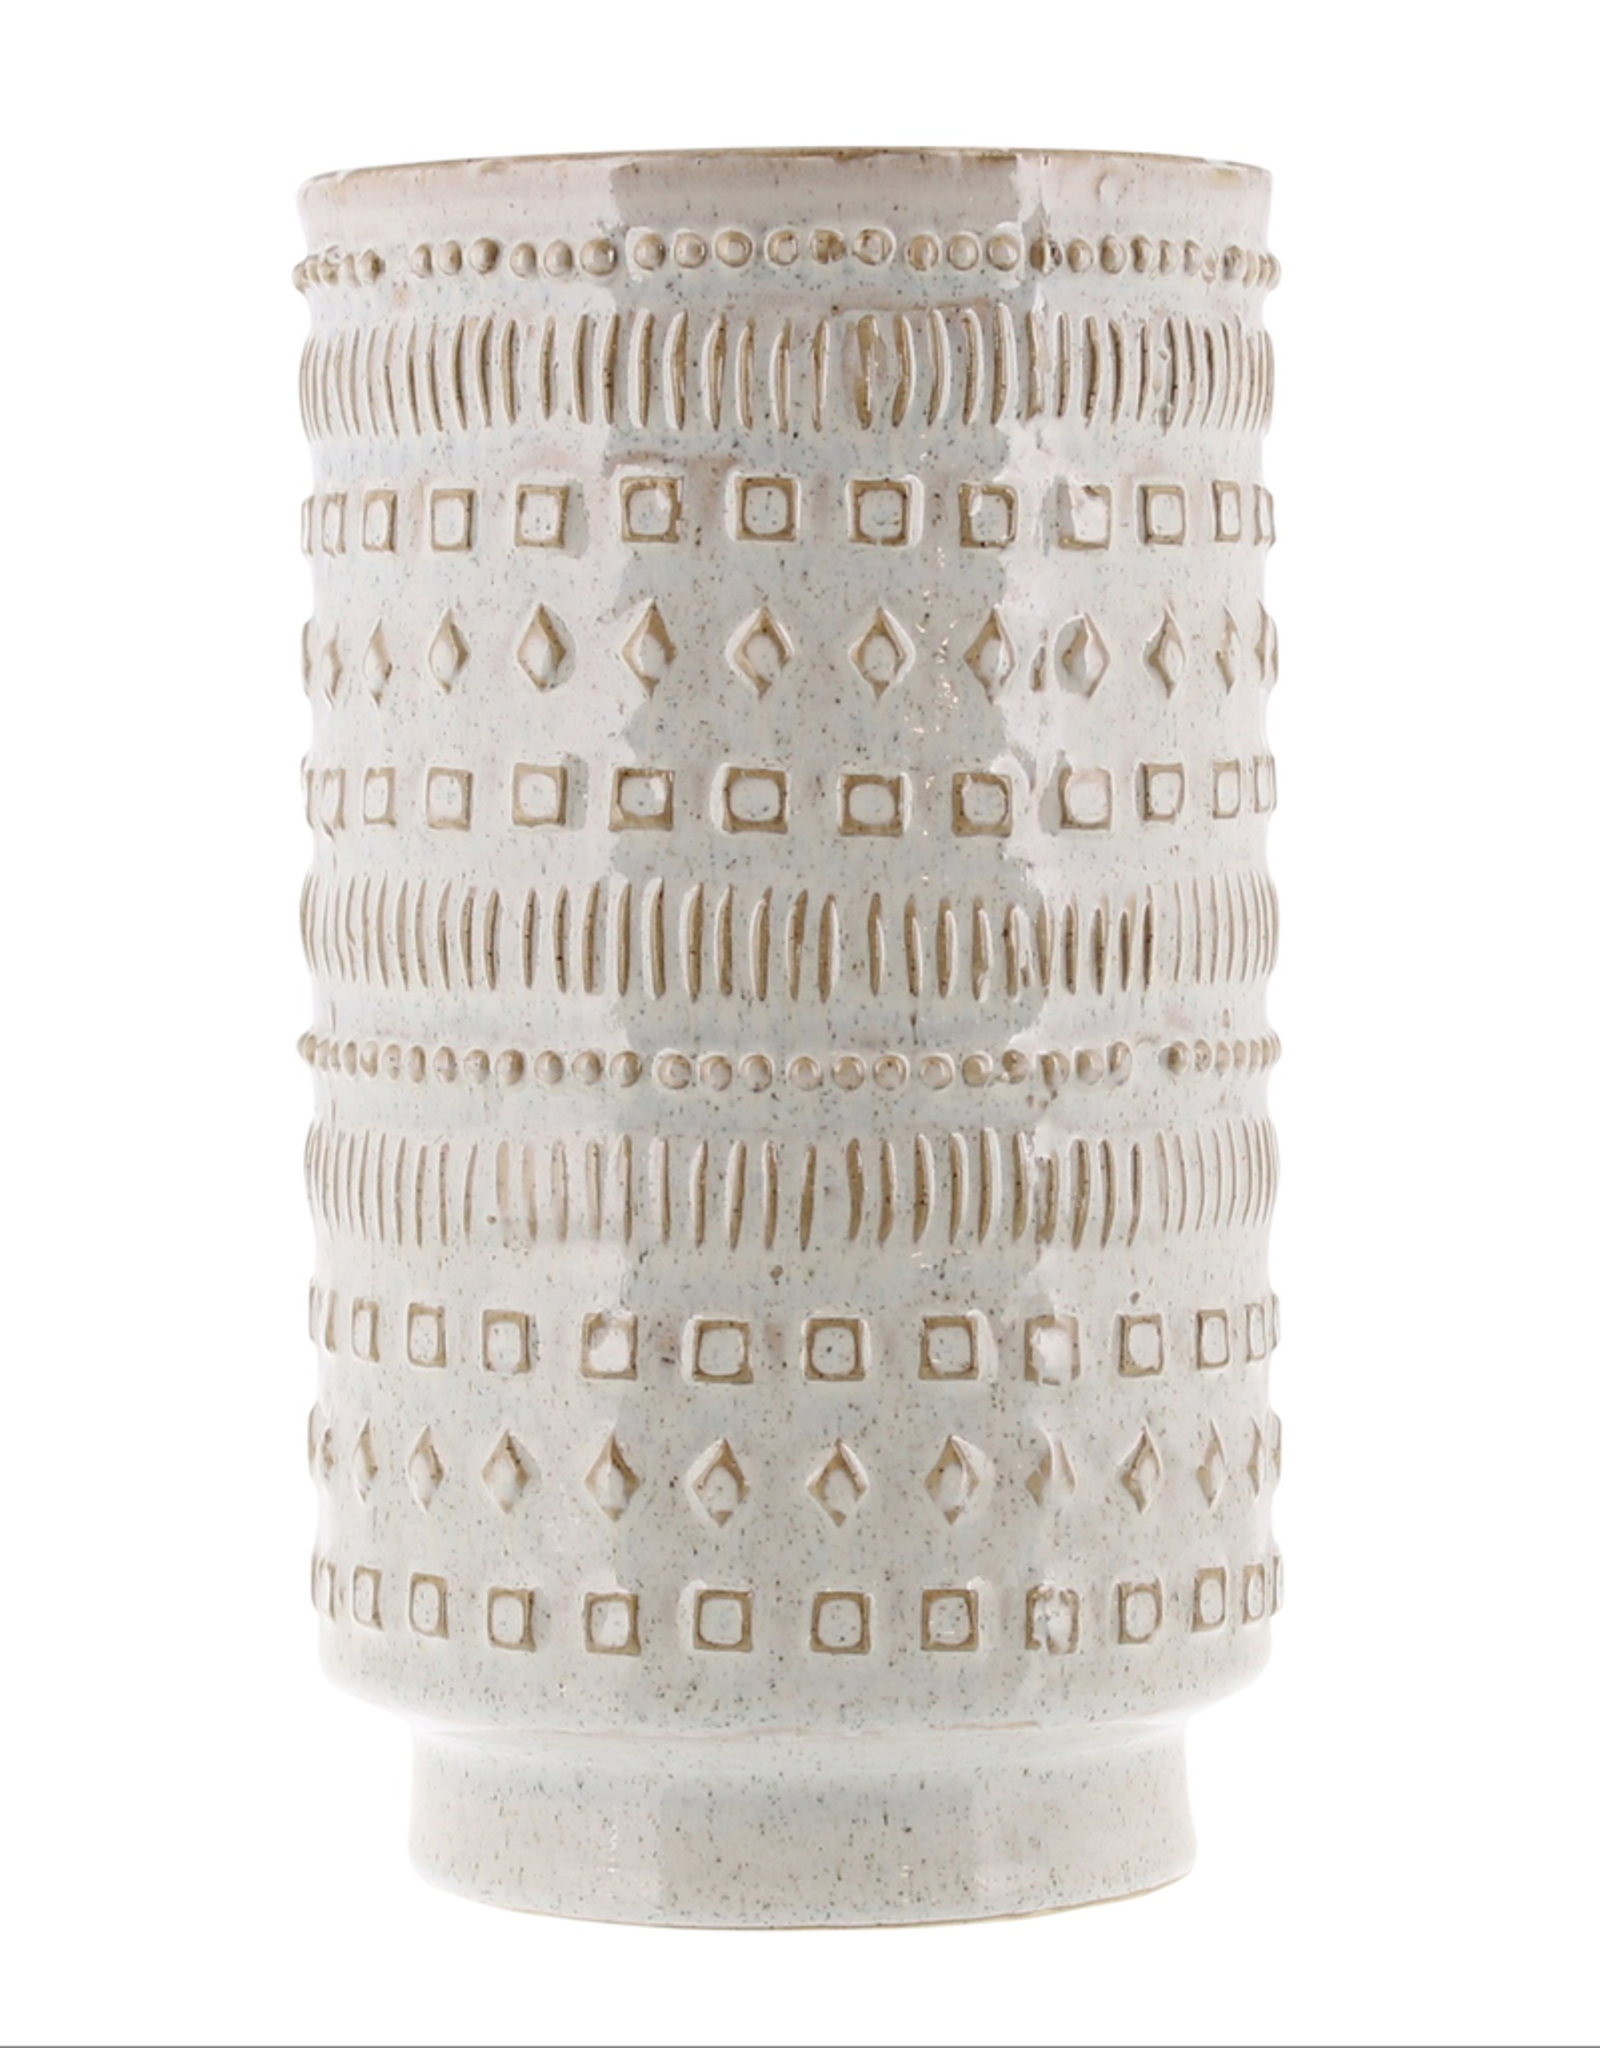 Vase, Patterned, White Ceramic, Peru